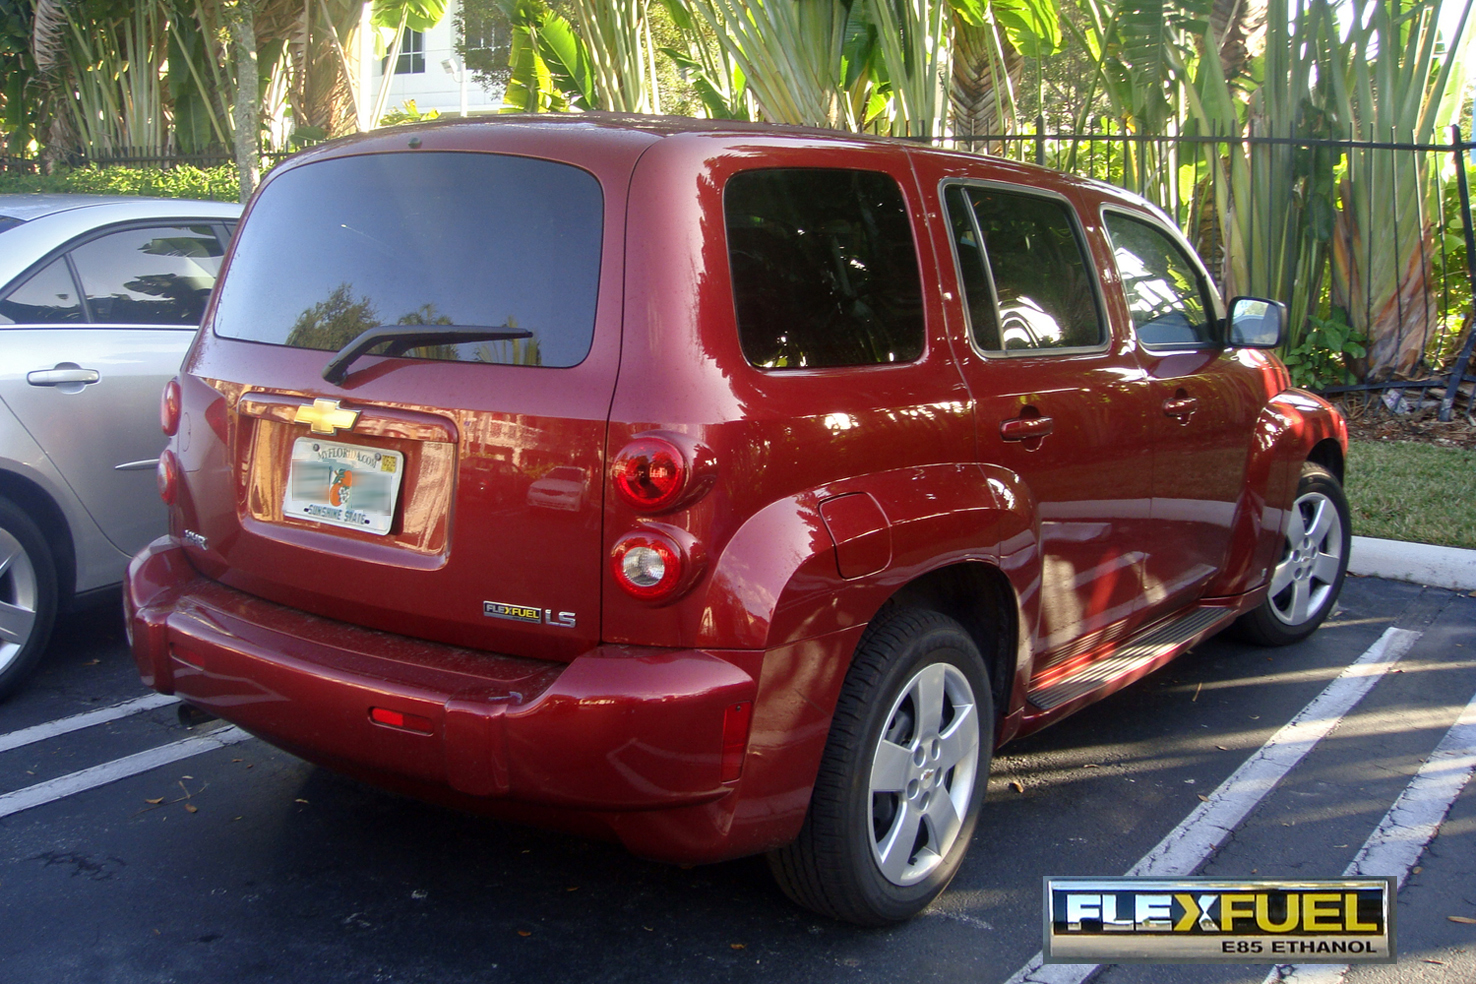 File:Chevrolet HRR FlexFuel 70 MIA 12 2008 with logo.jpg ...